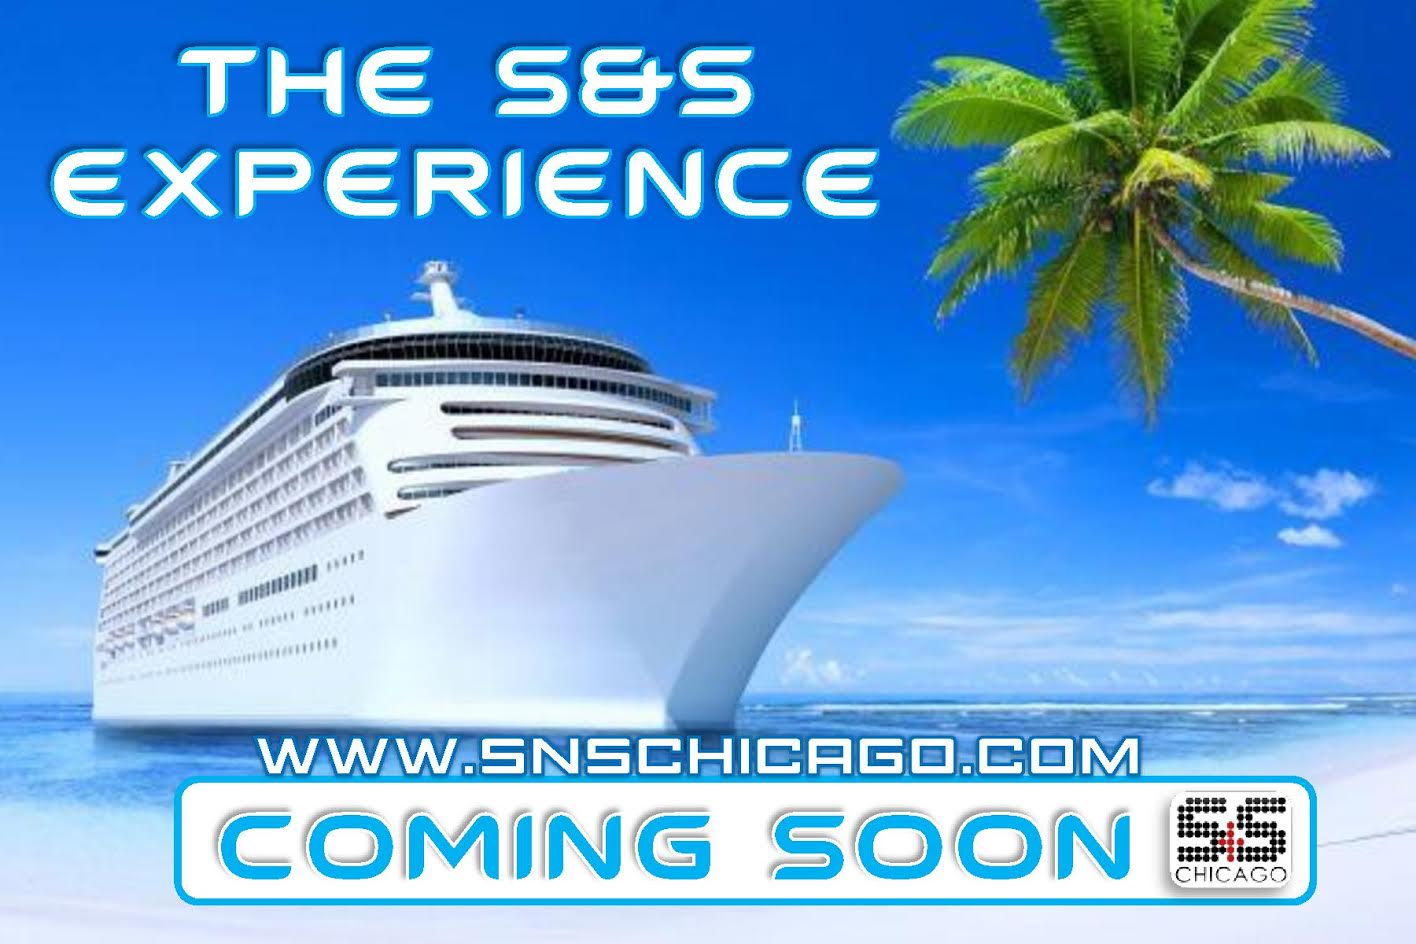 The S&S Experience at Sea Interest Survey